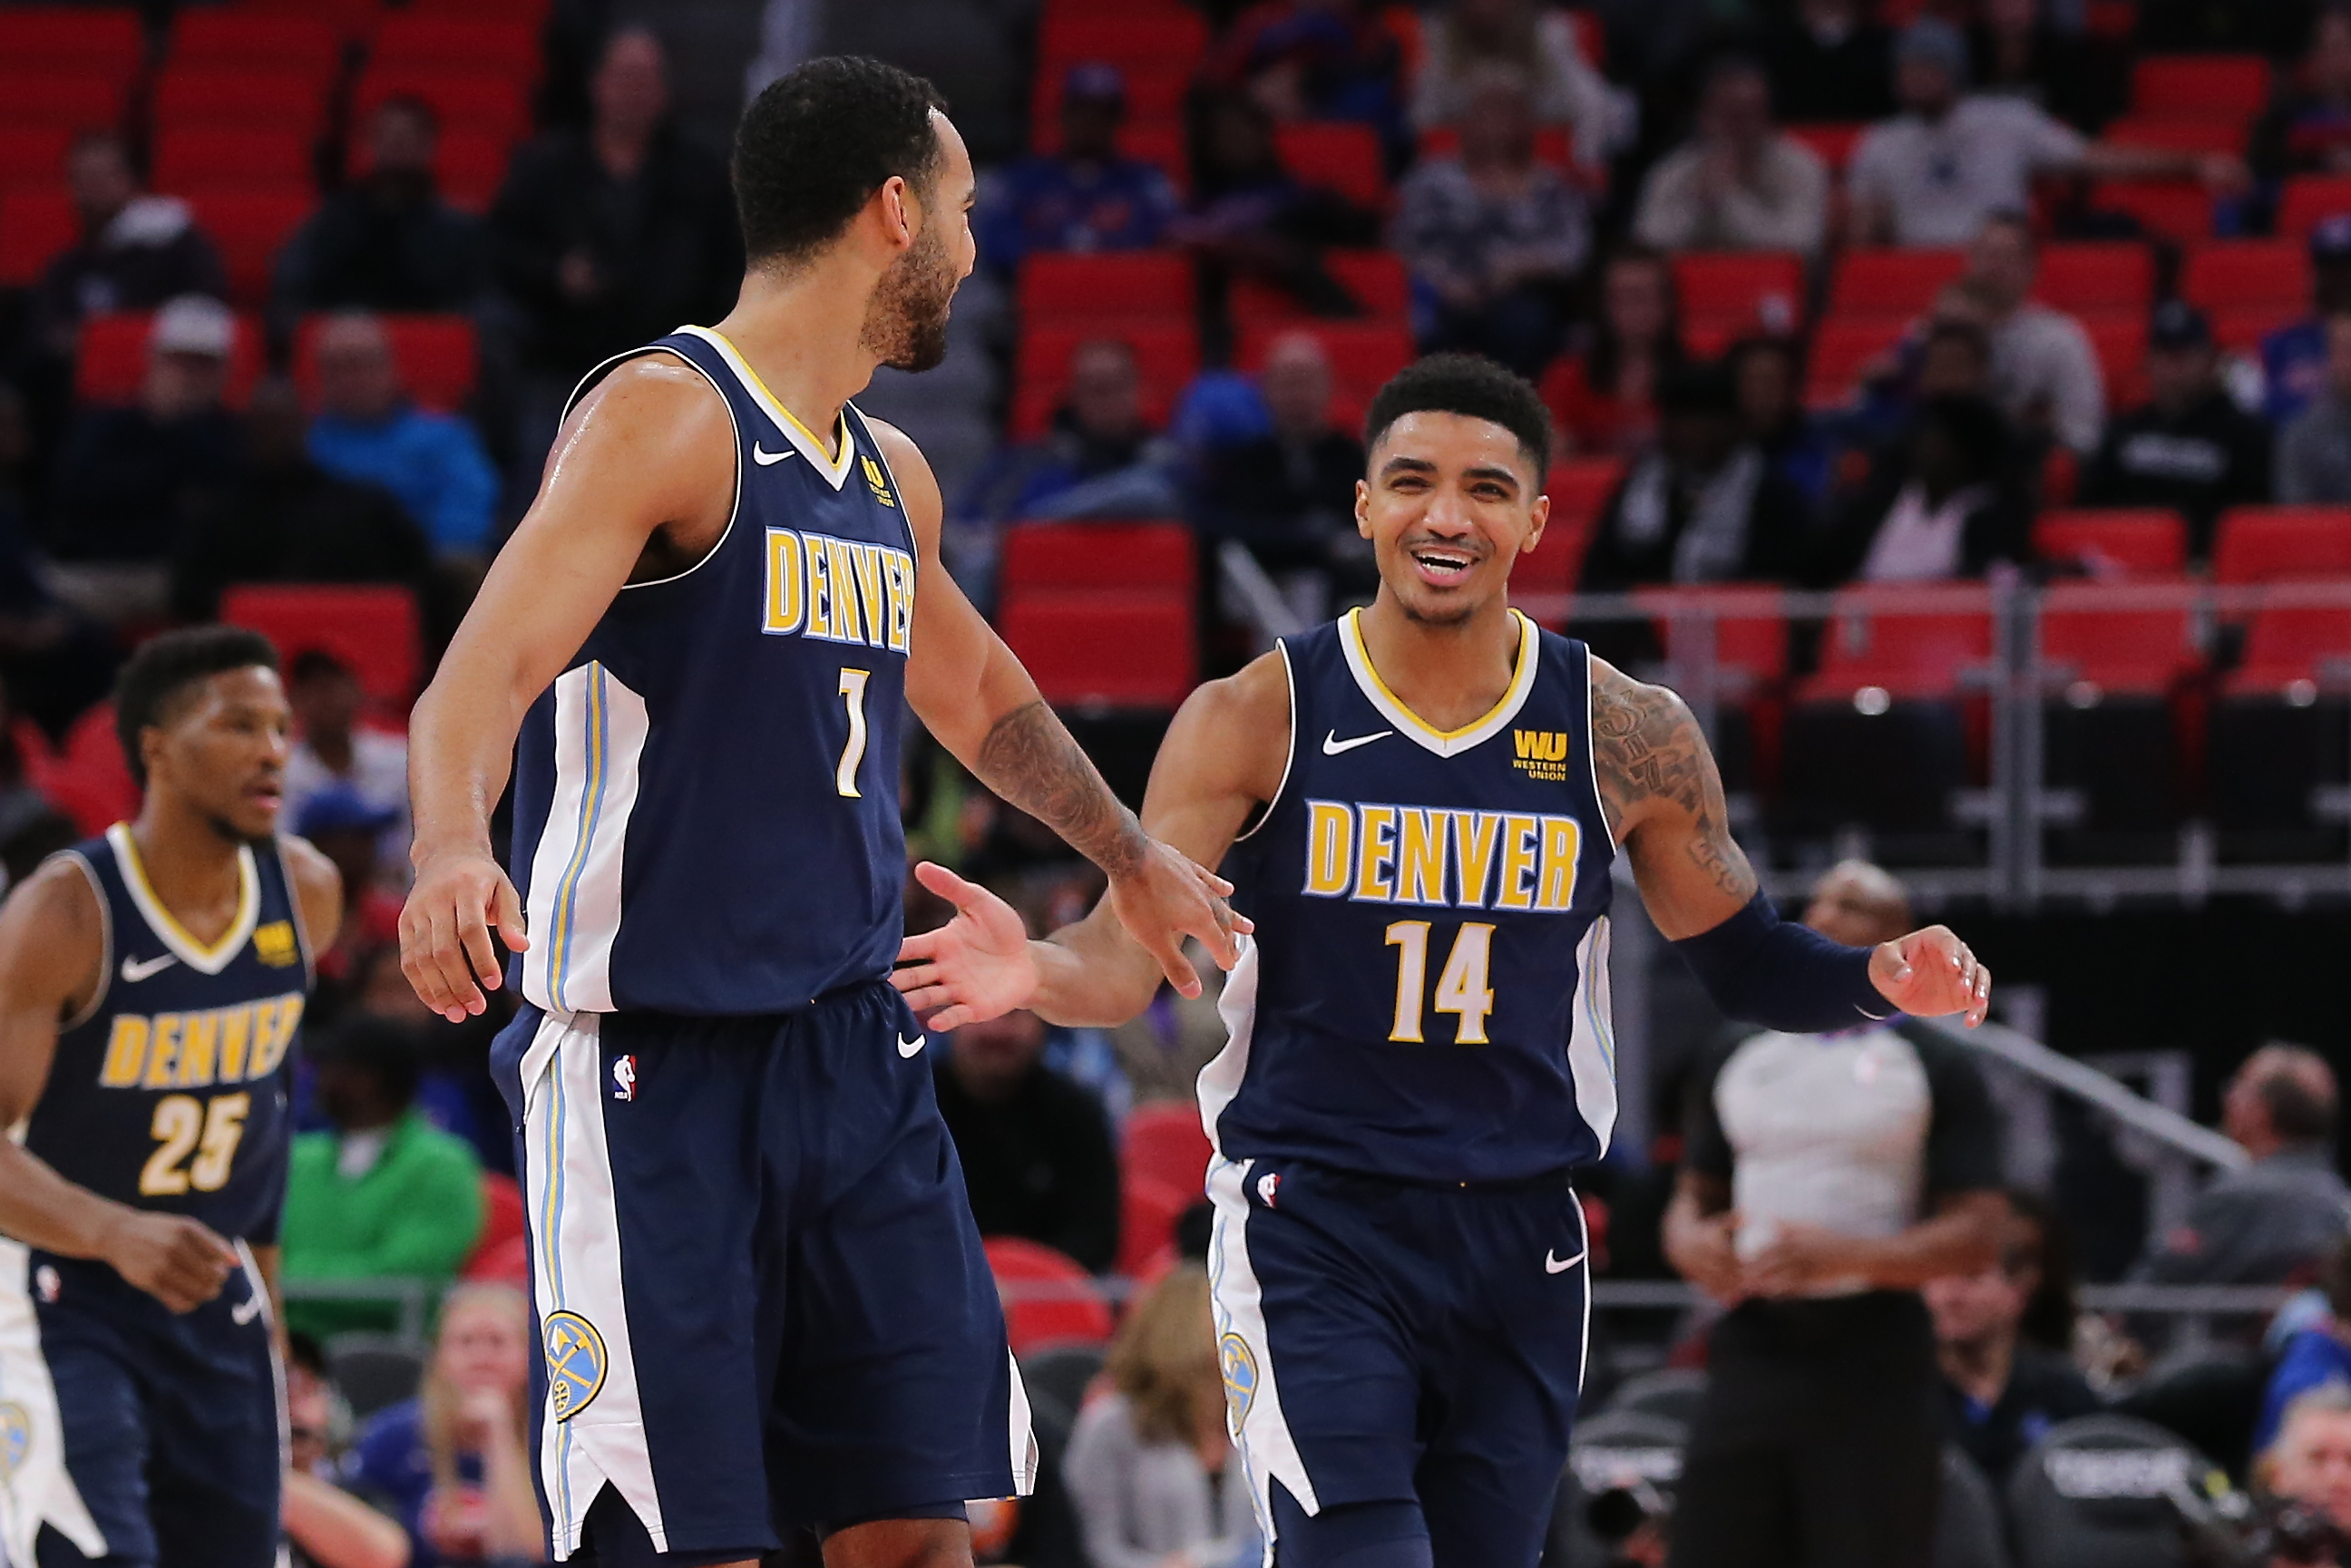 Player grades from Nuggets win at Detroit